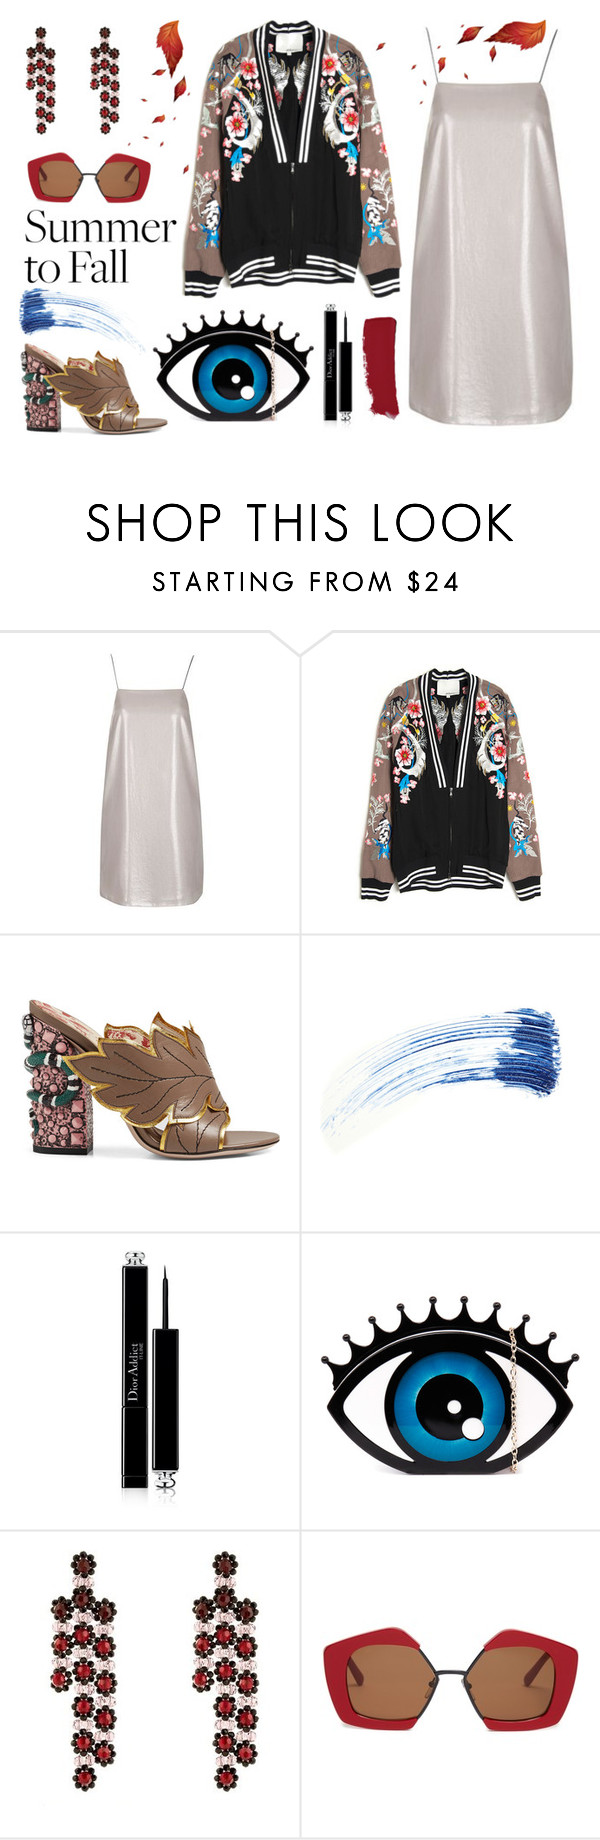 """""""Summer to Fall Layering"""" by erindream ❤ liked on Polyvore featuring Topshop, 3.1 Phillip Lim, Gucci, Eyeko, Christian Dior, Simone Rocha, Marni and Chanel"""